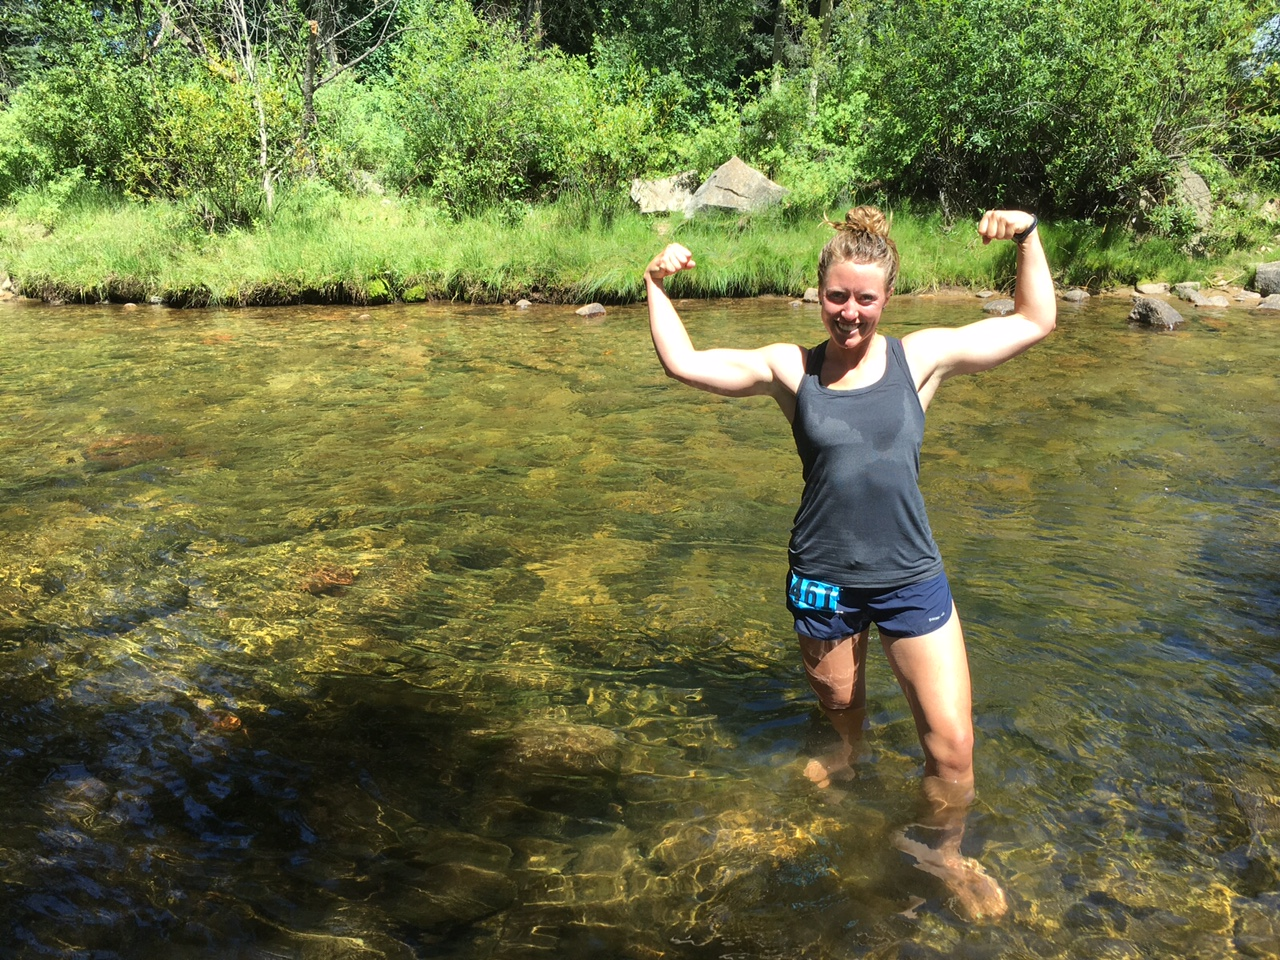 Post Half Marathon creek soak